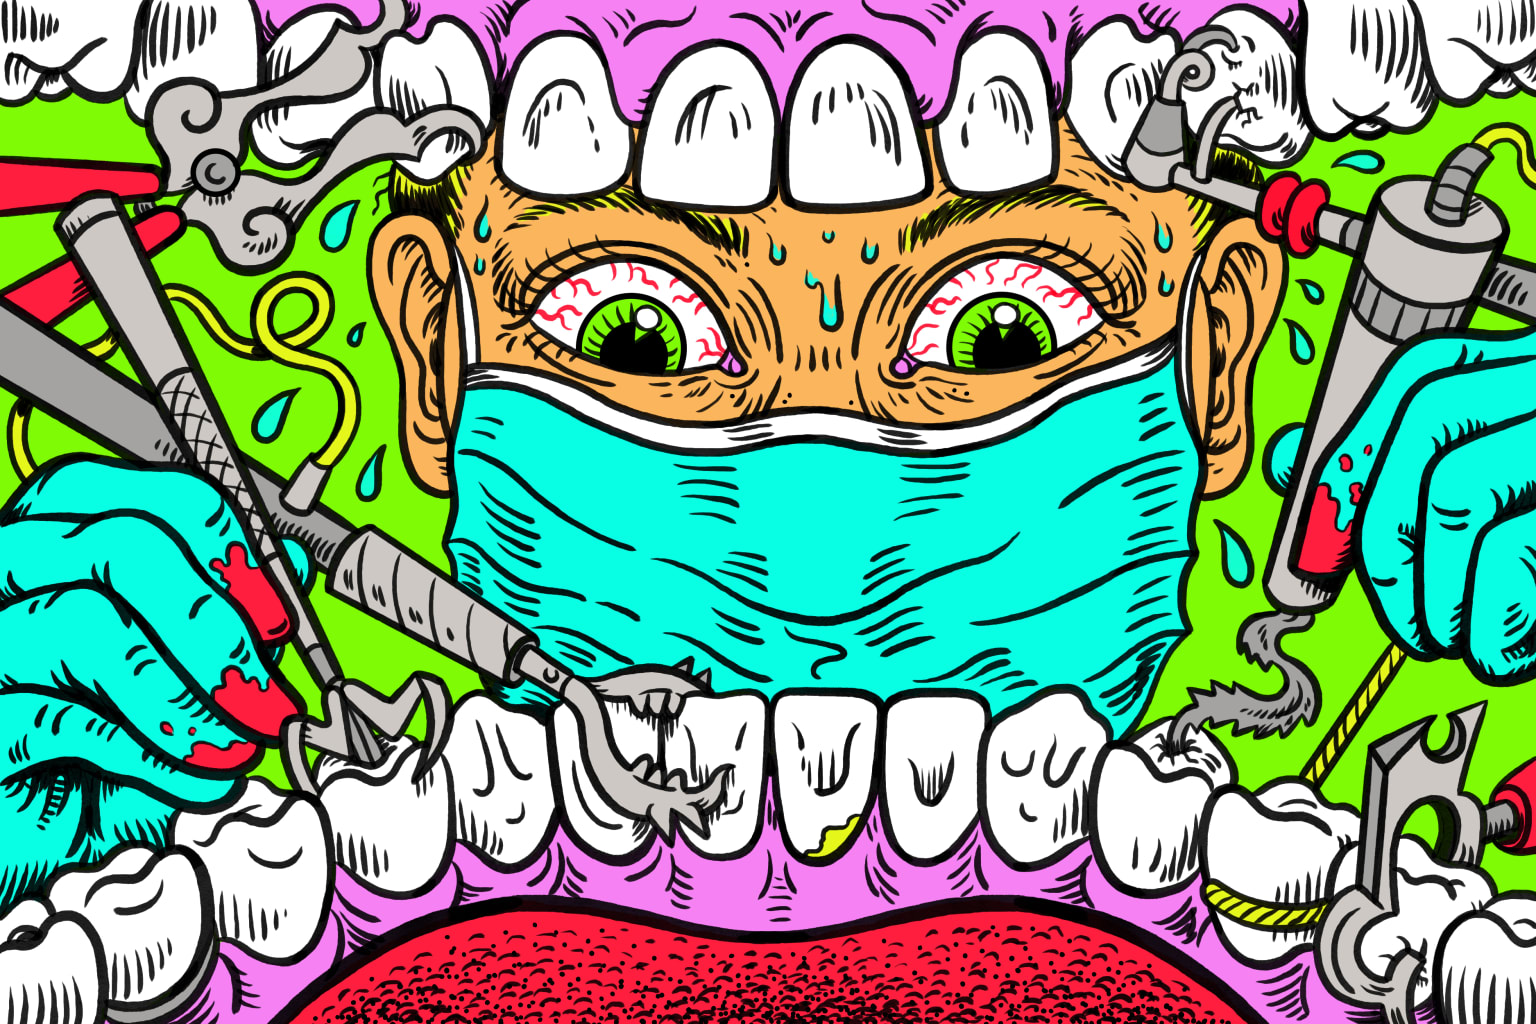 More Reasons To Hate The Dentist